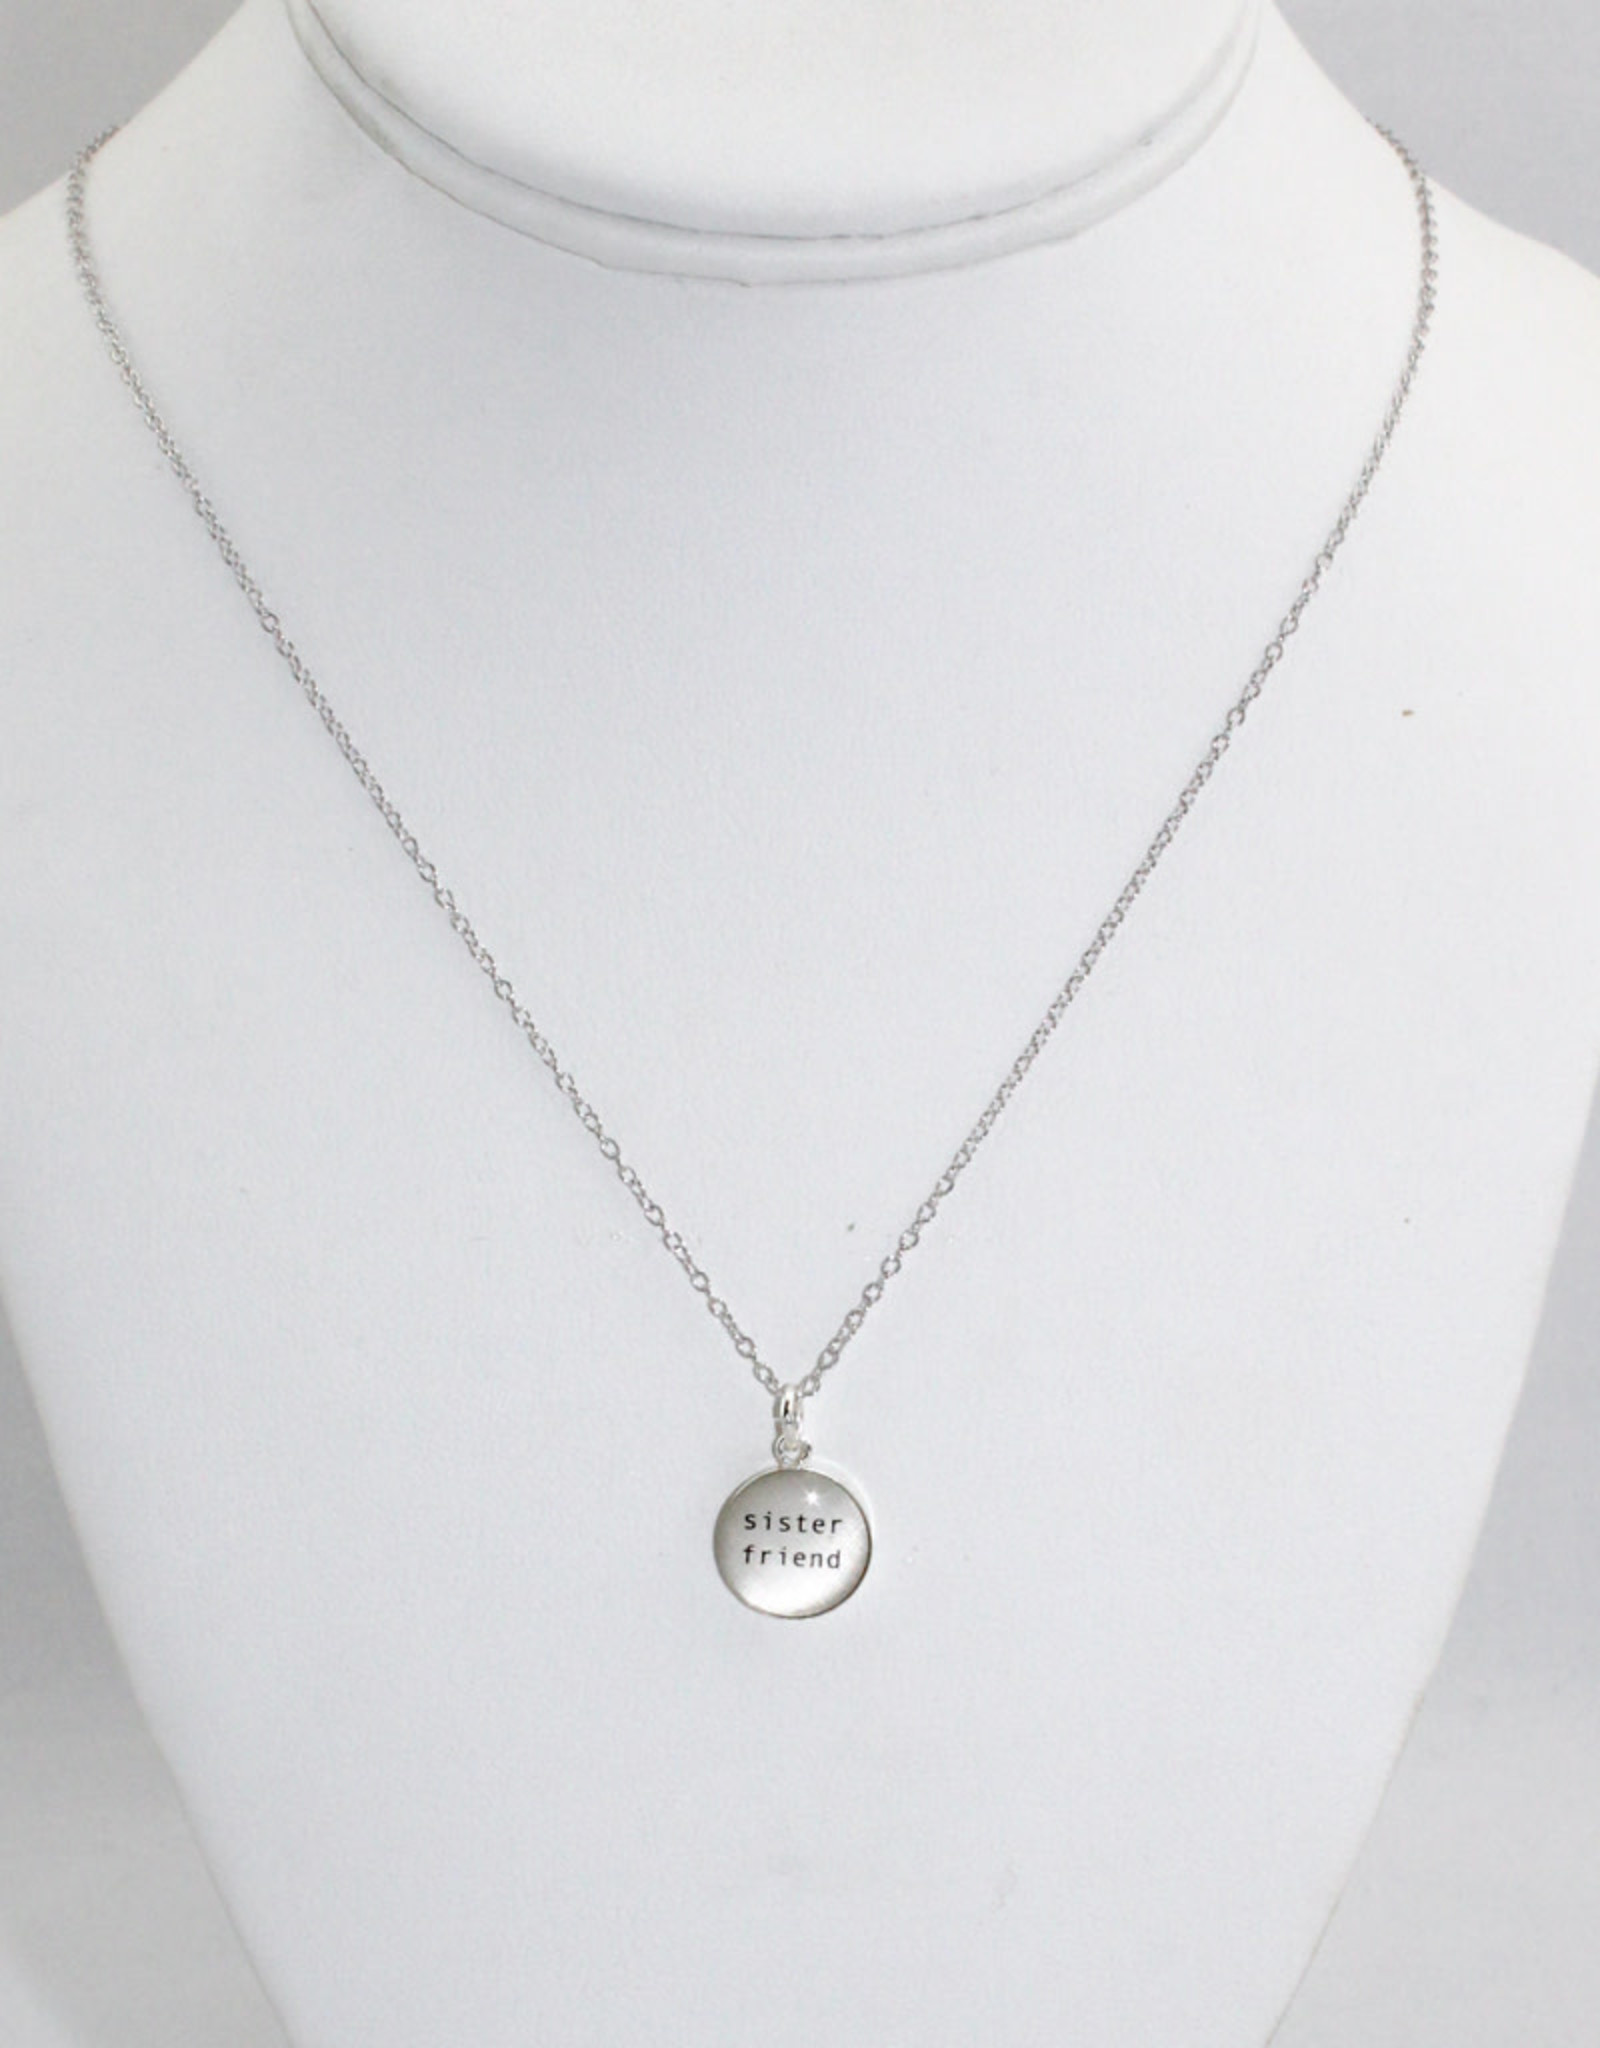 Everyday Artifacts Sister Friend Necklace